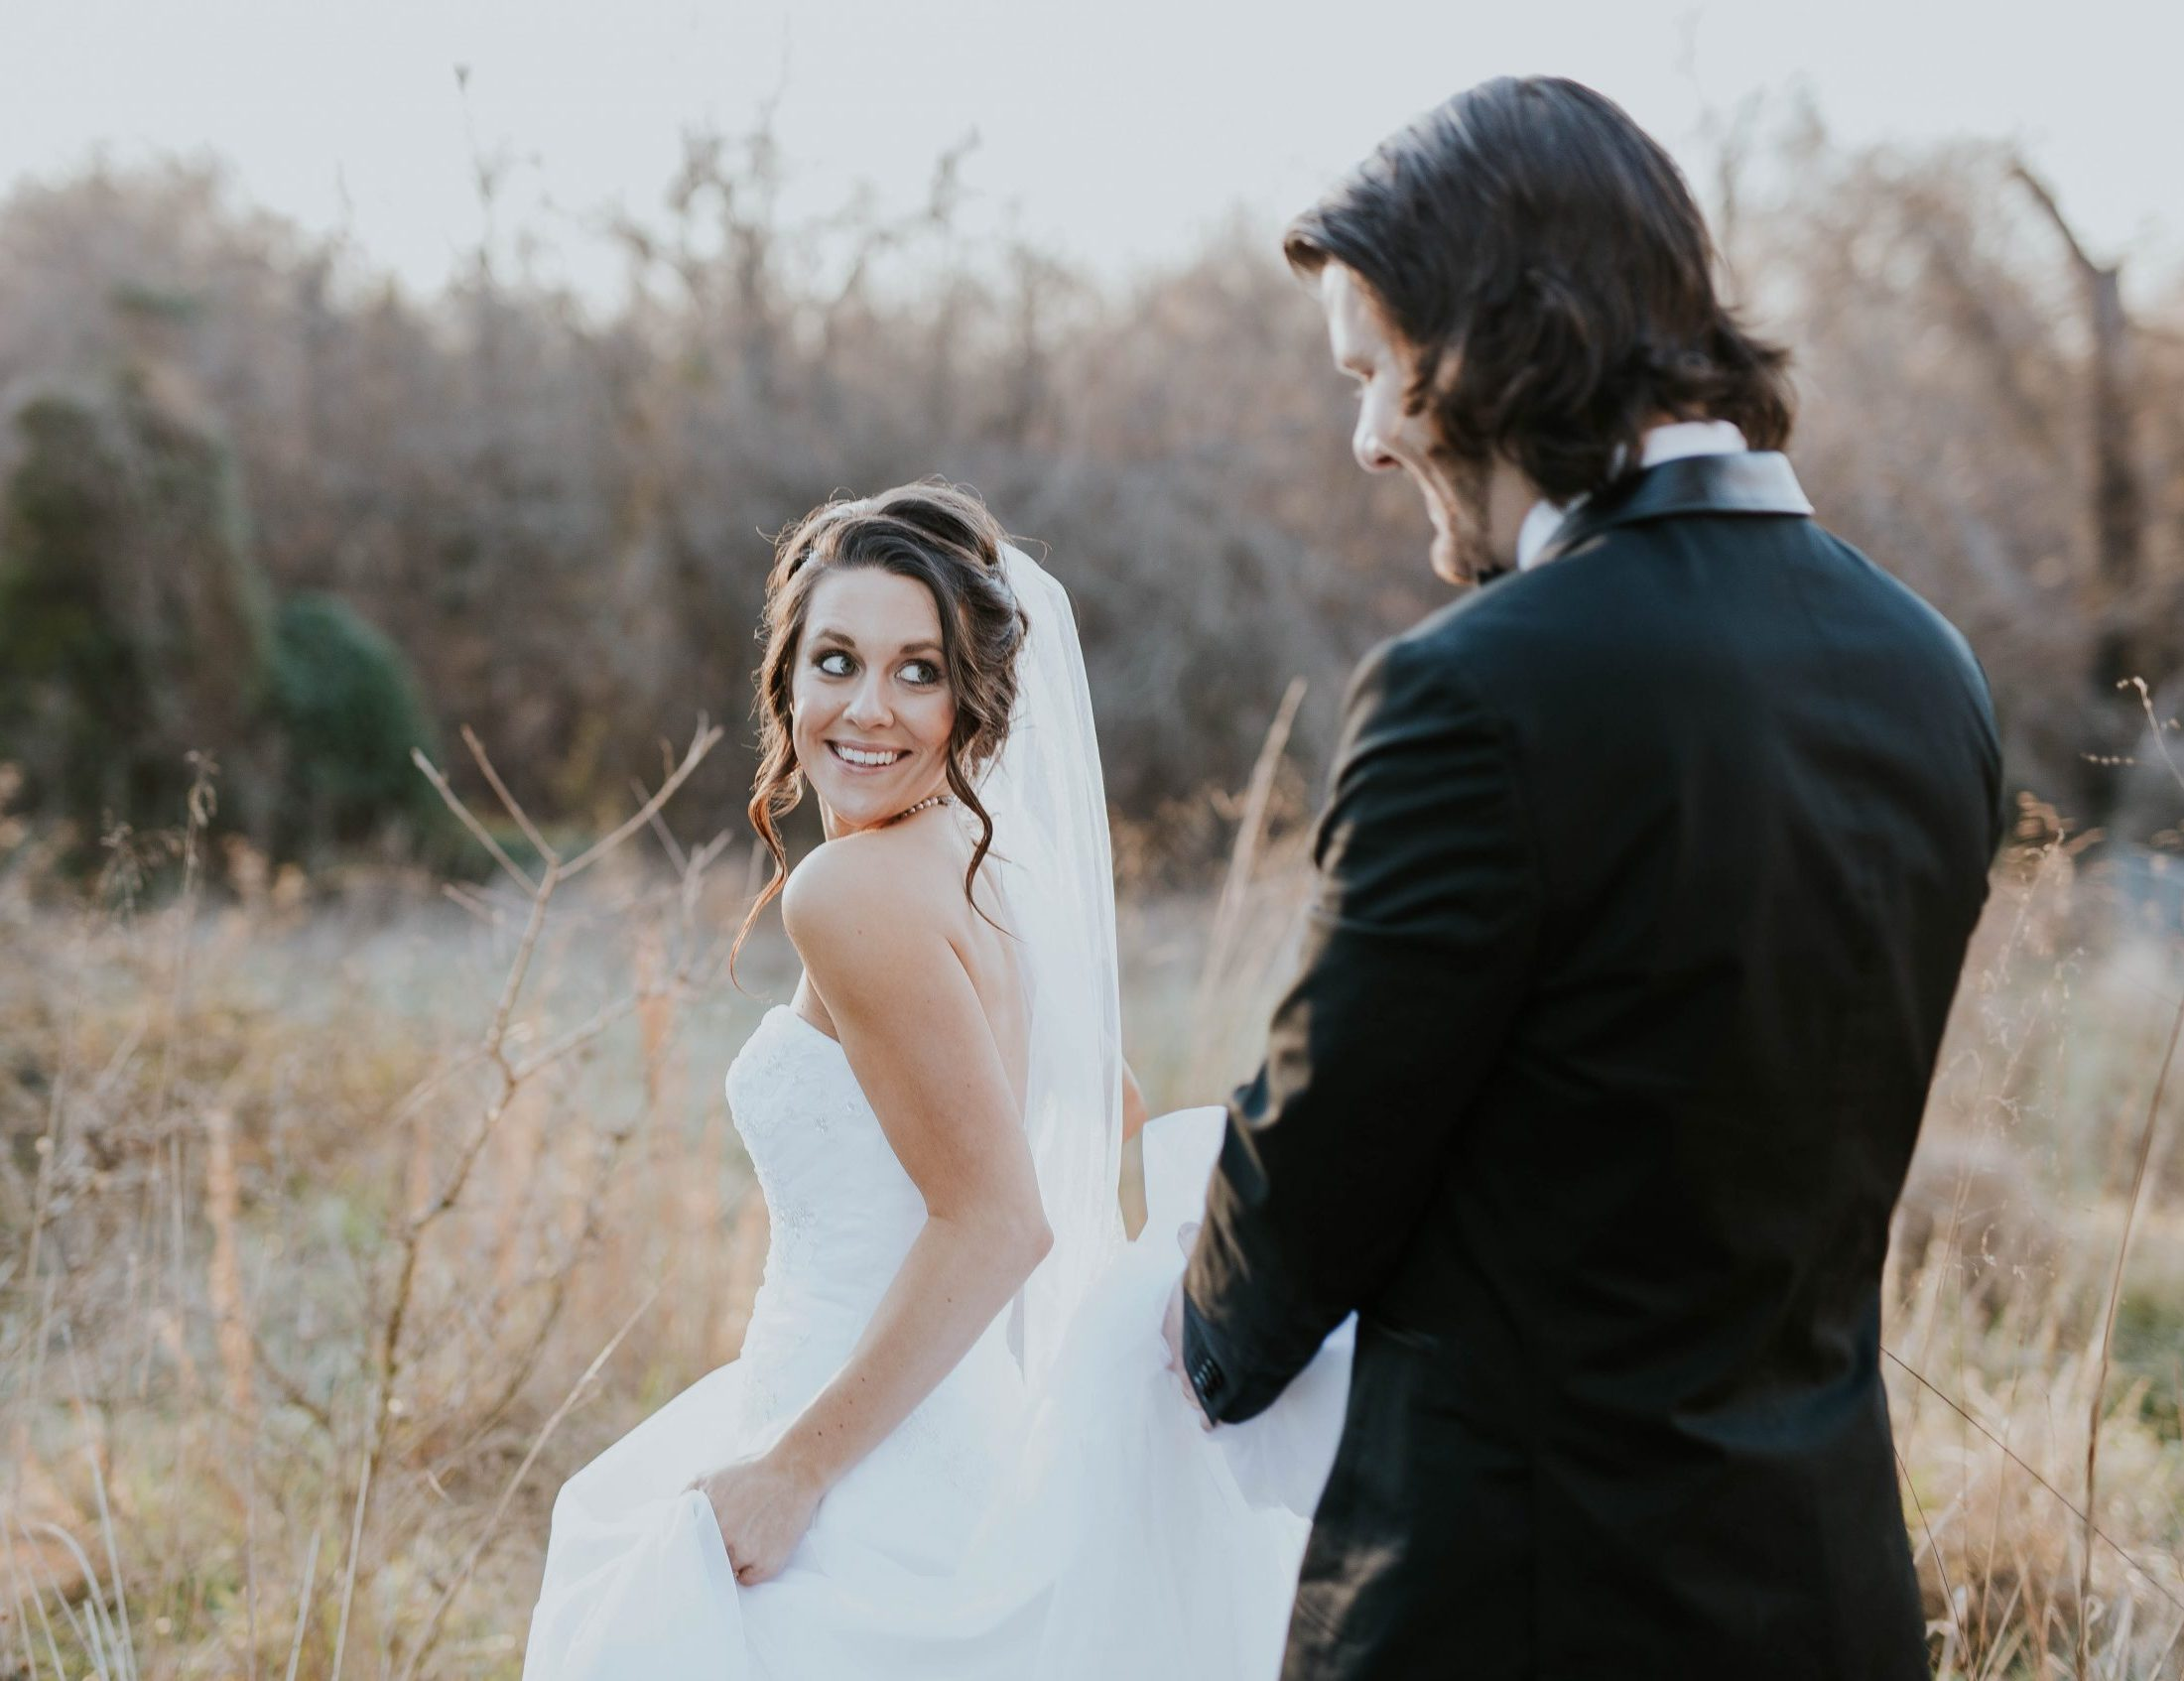 brooke cagle zMD a665huA unsplash scaled e1620128498566 Here Are The Cringiest Wedding Moments Ever Arranged By The Happy Couple Copy